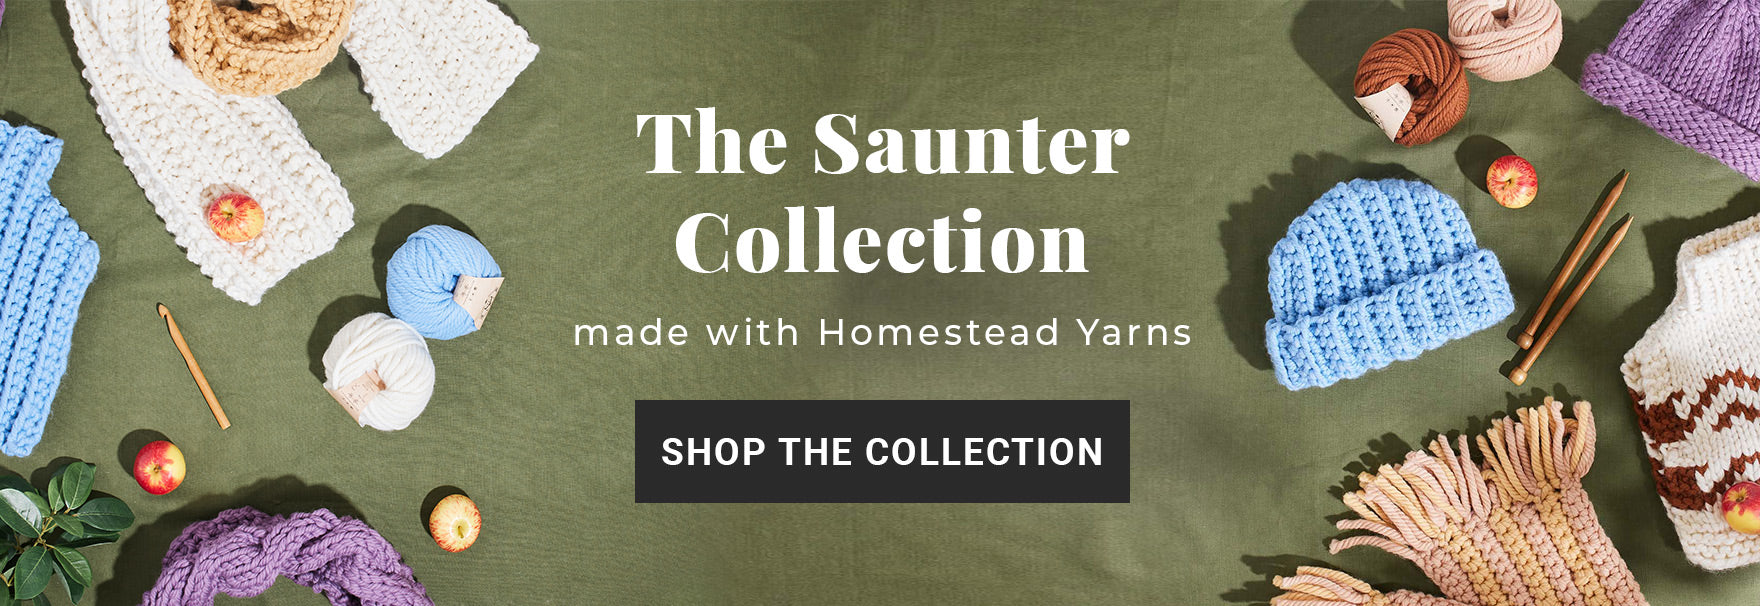 Shop the Saunter Collection free knitting and crochet patterns